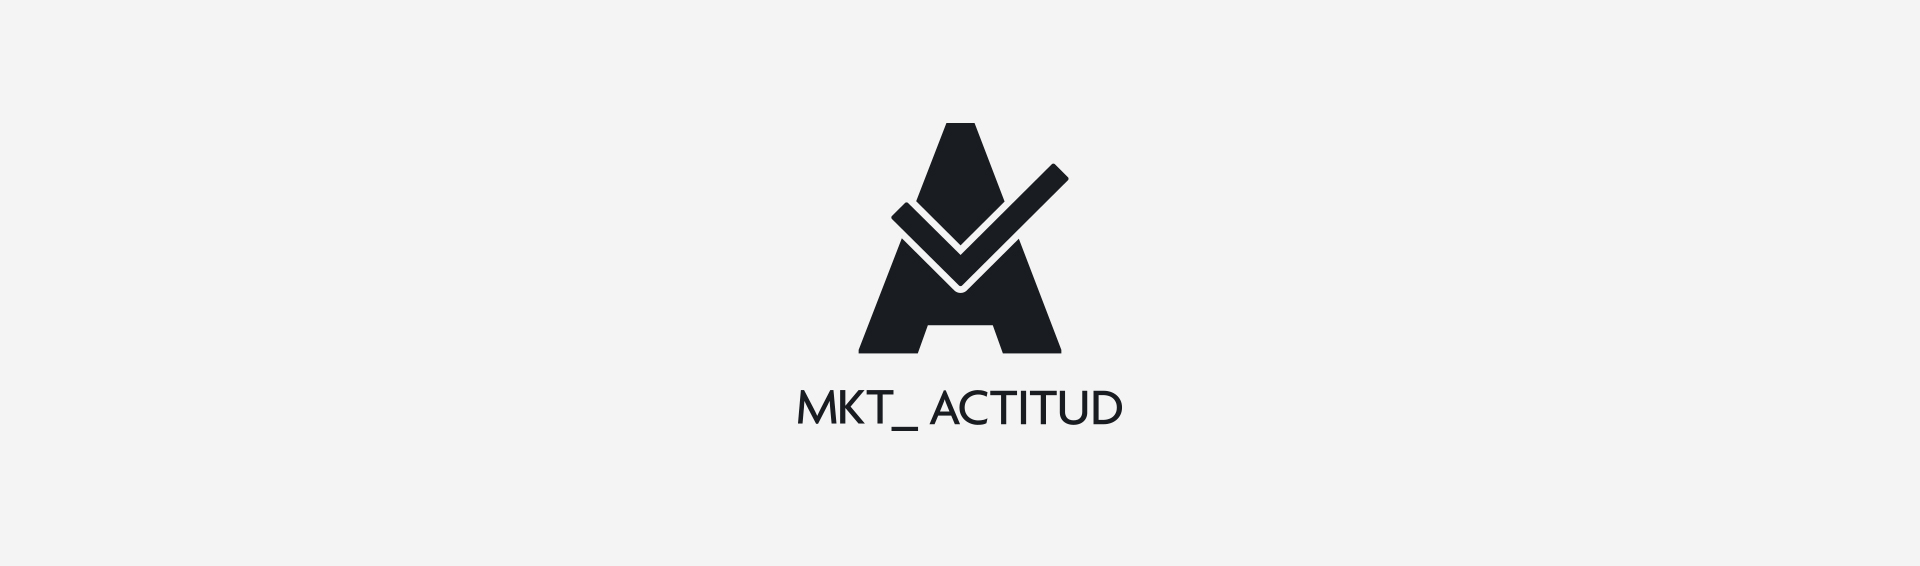 mktactitud_logotype_identity_corporate